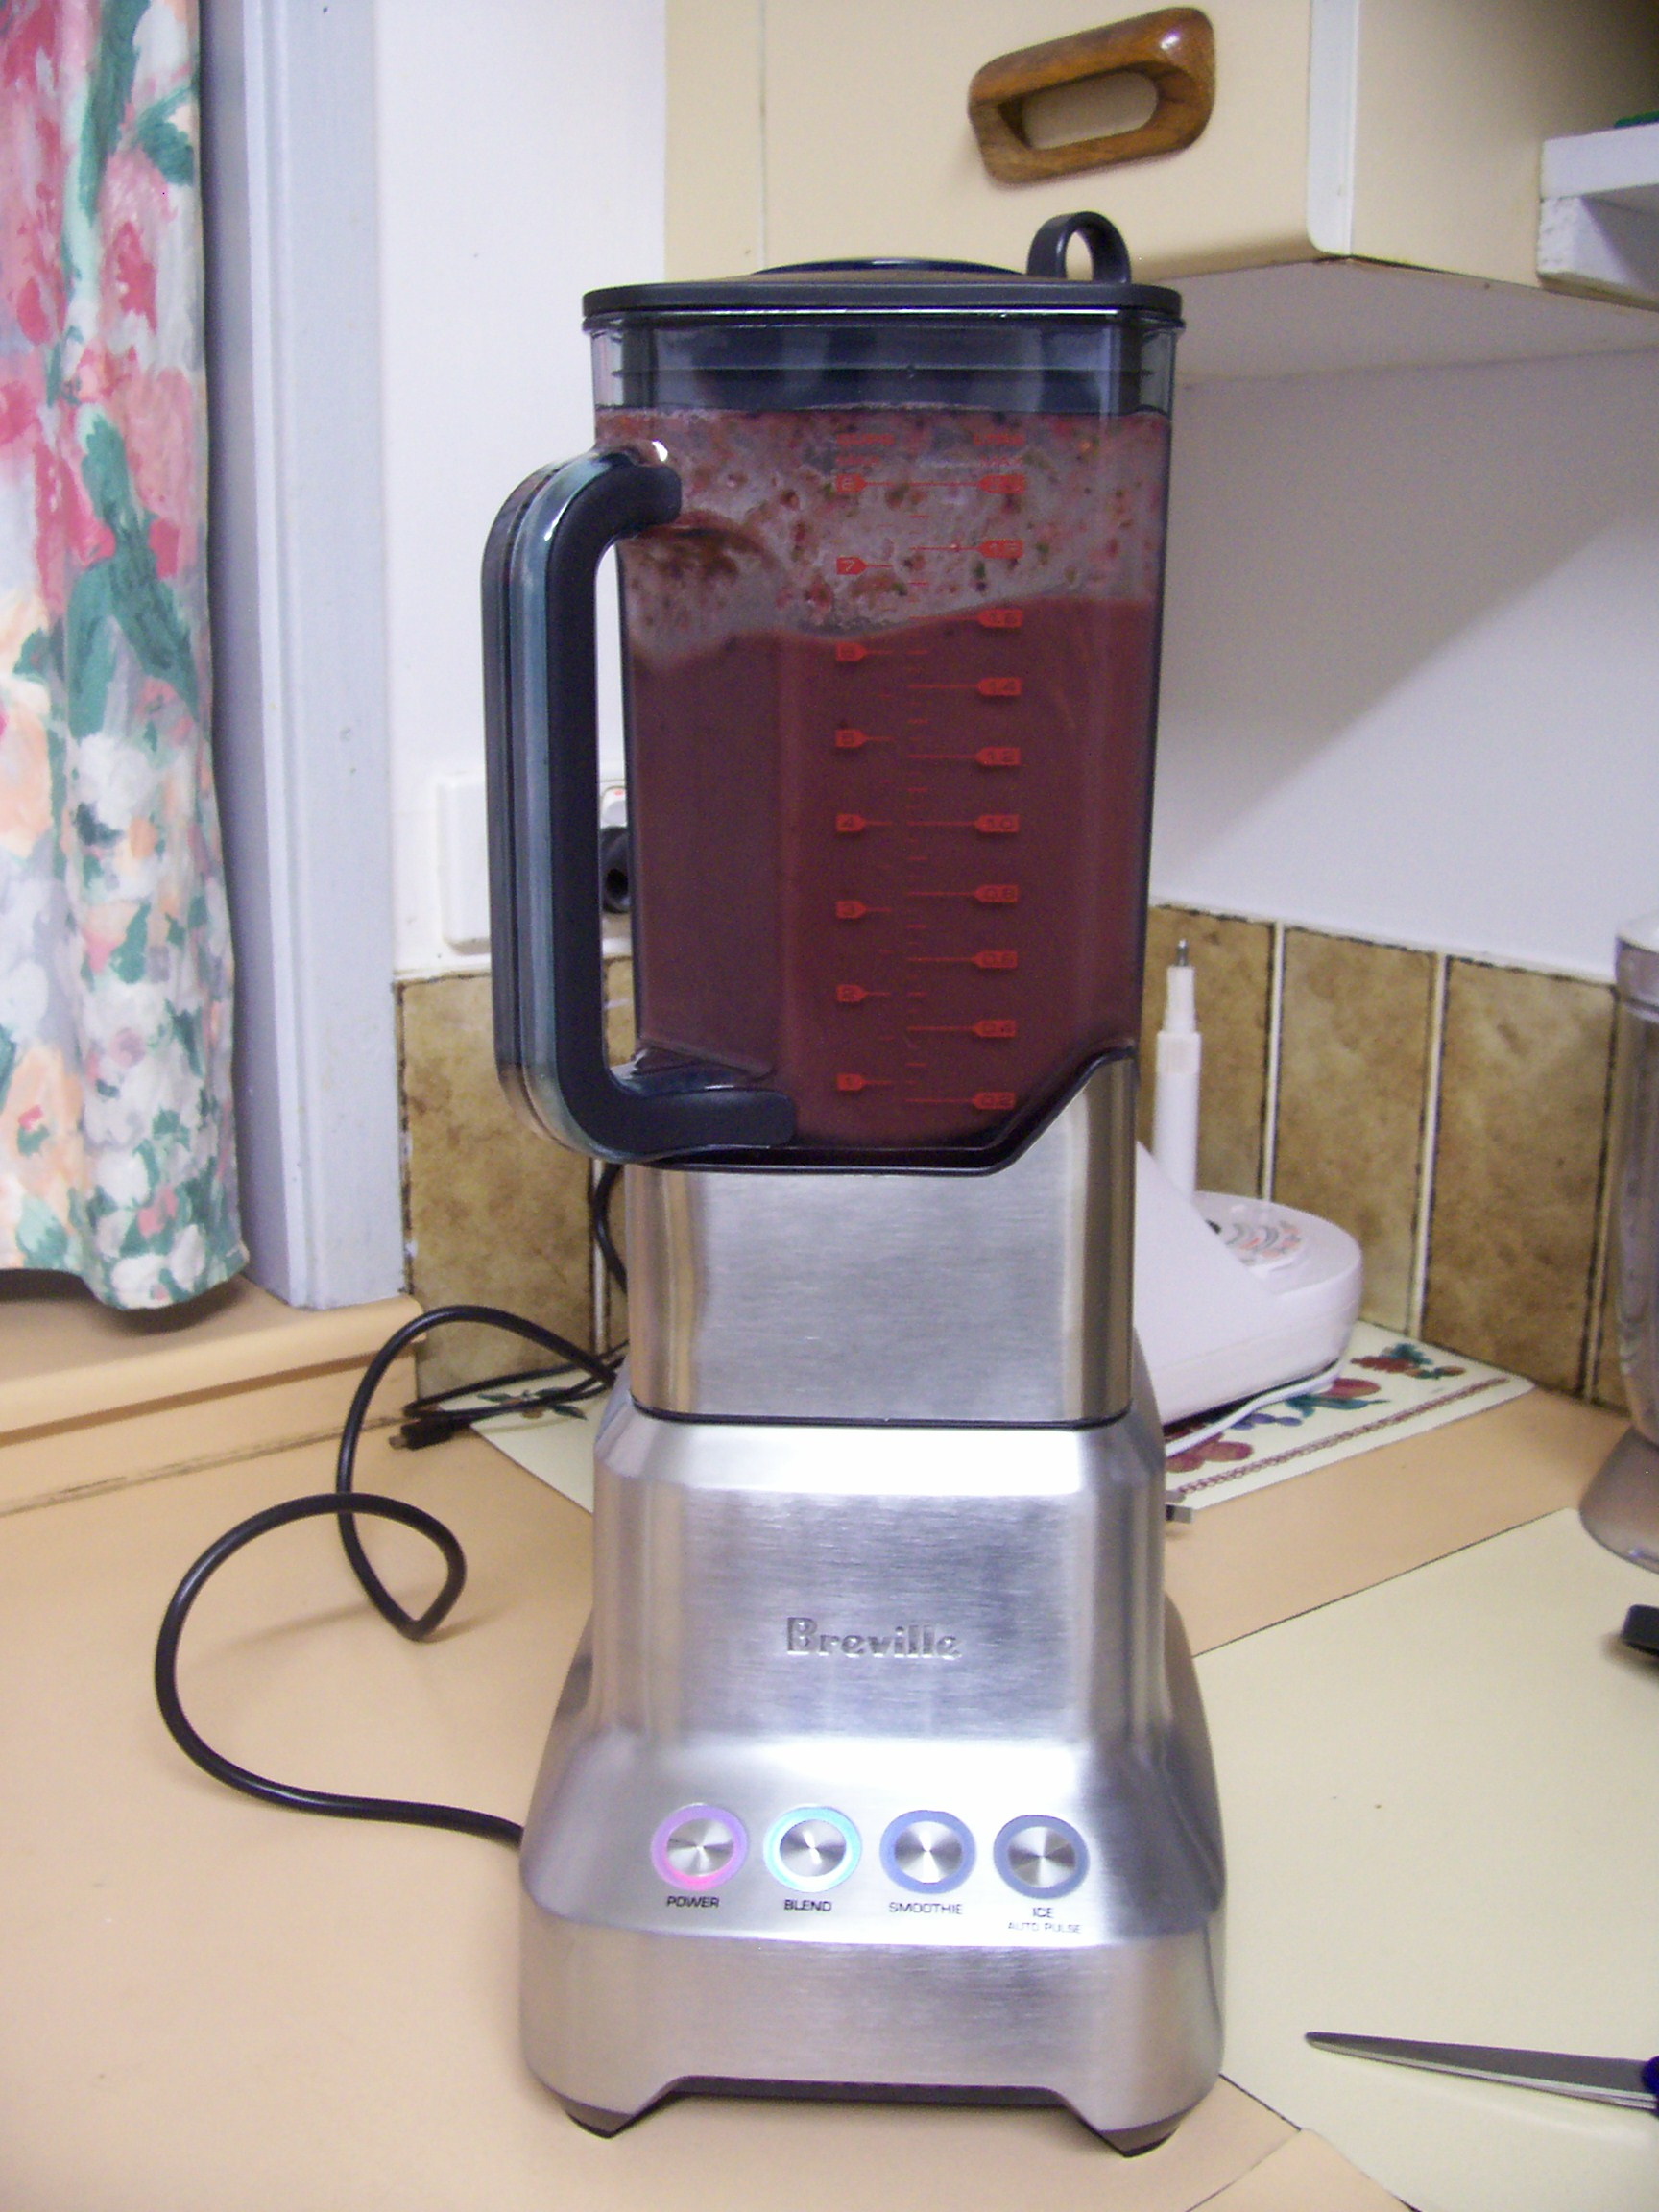 An Aussie Blender Alternative: Breville Professional Die Cast Blender (Finding the Right Blender for the Job: Green Smoothies)